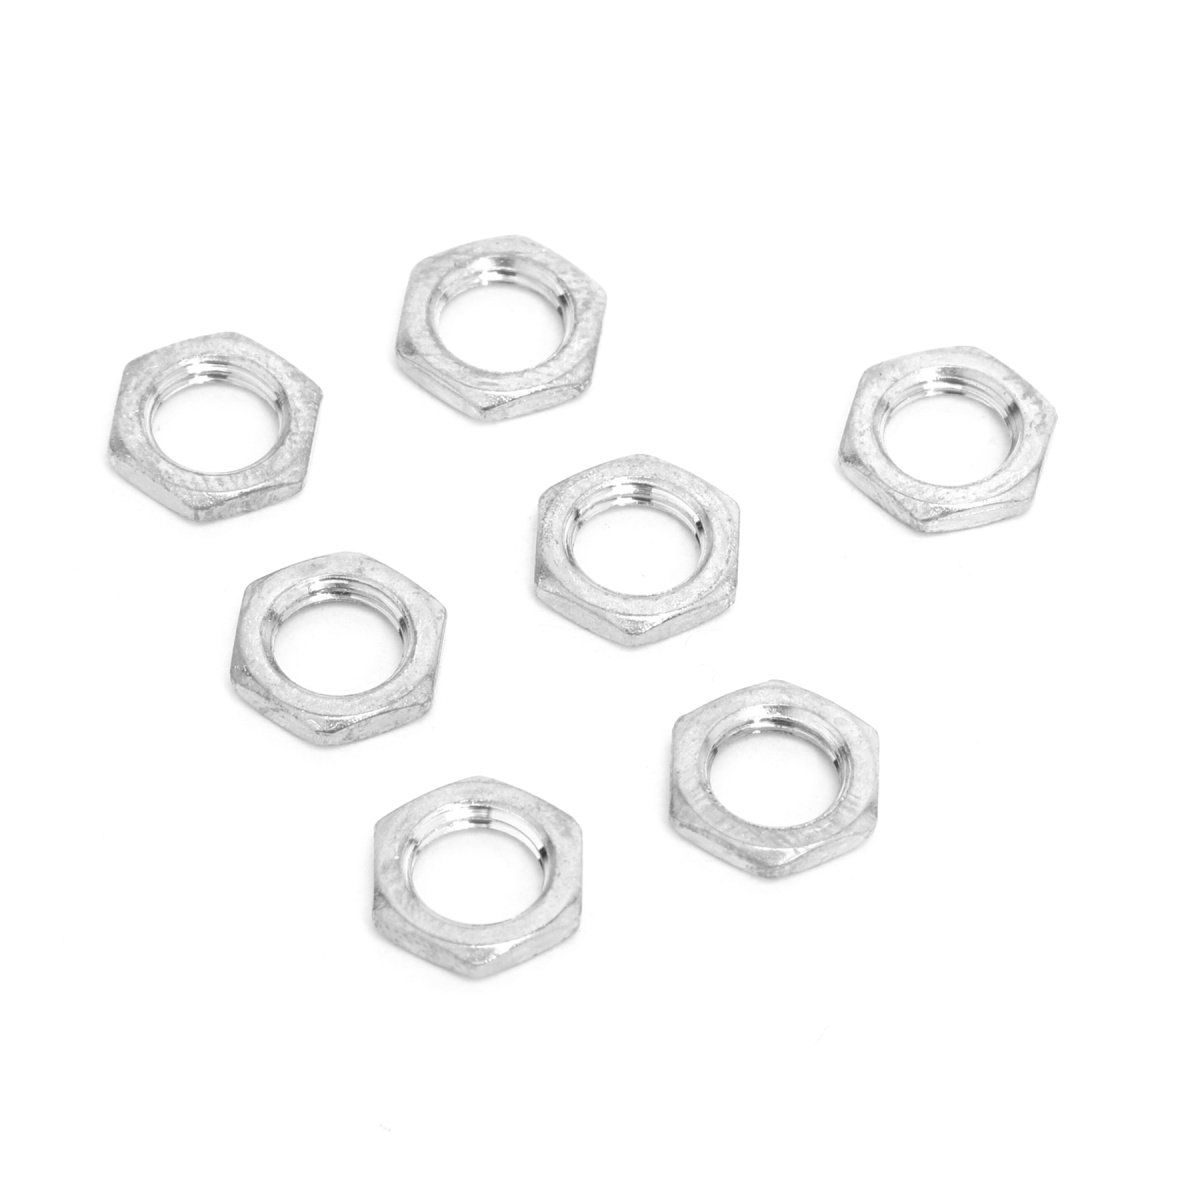 Musiclily 7MM Guitar Bass Pots Potentiometer Hex Nut for Fender Replacement(Pack of 10) MX0890-10